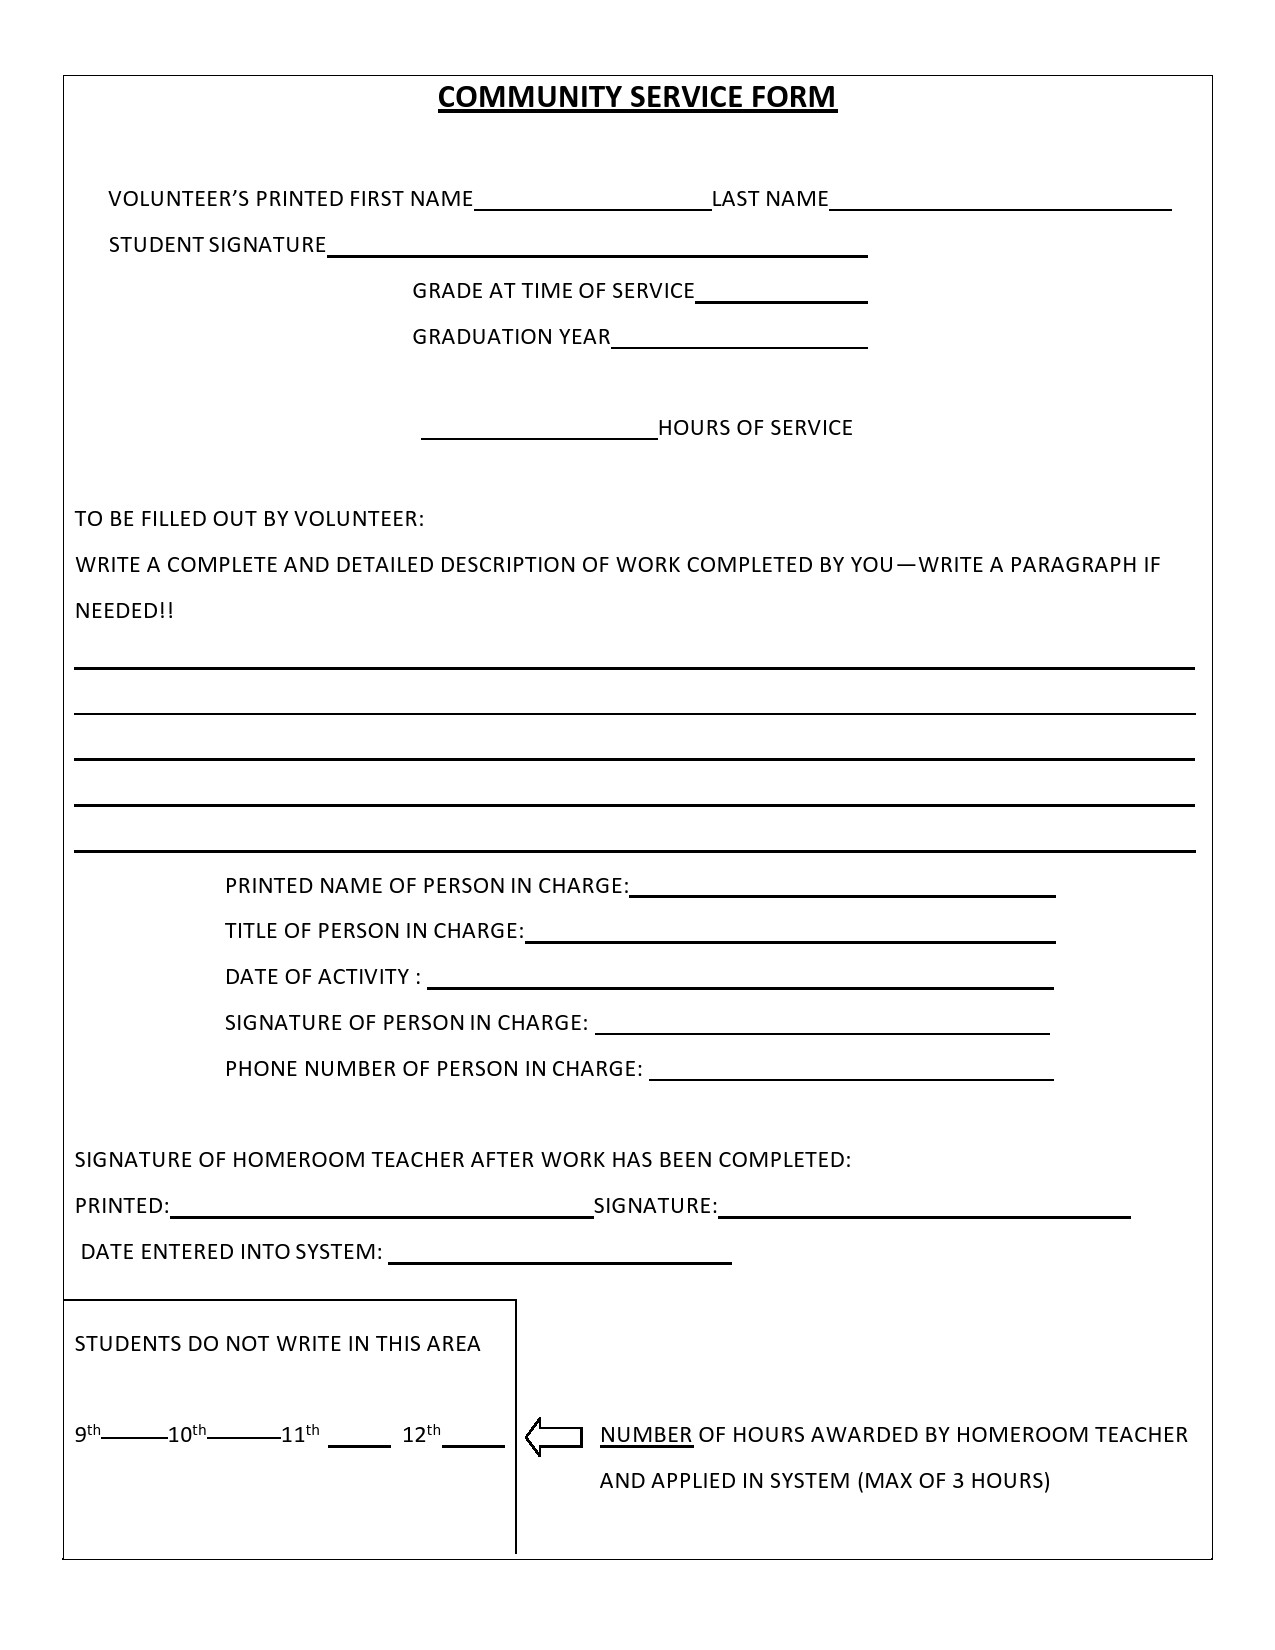 Free community service form 19